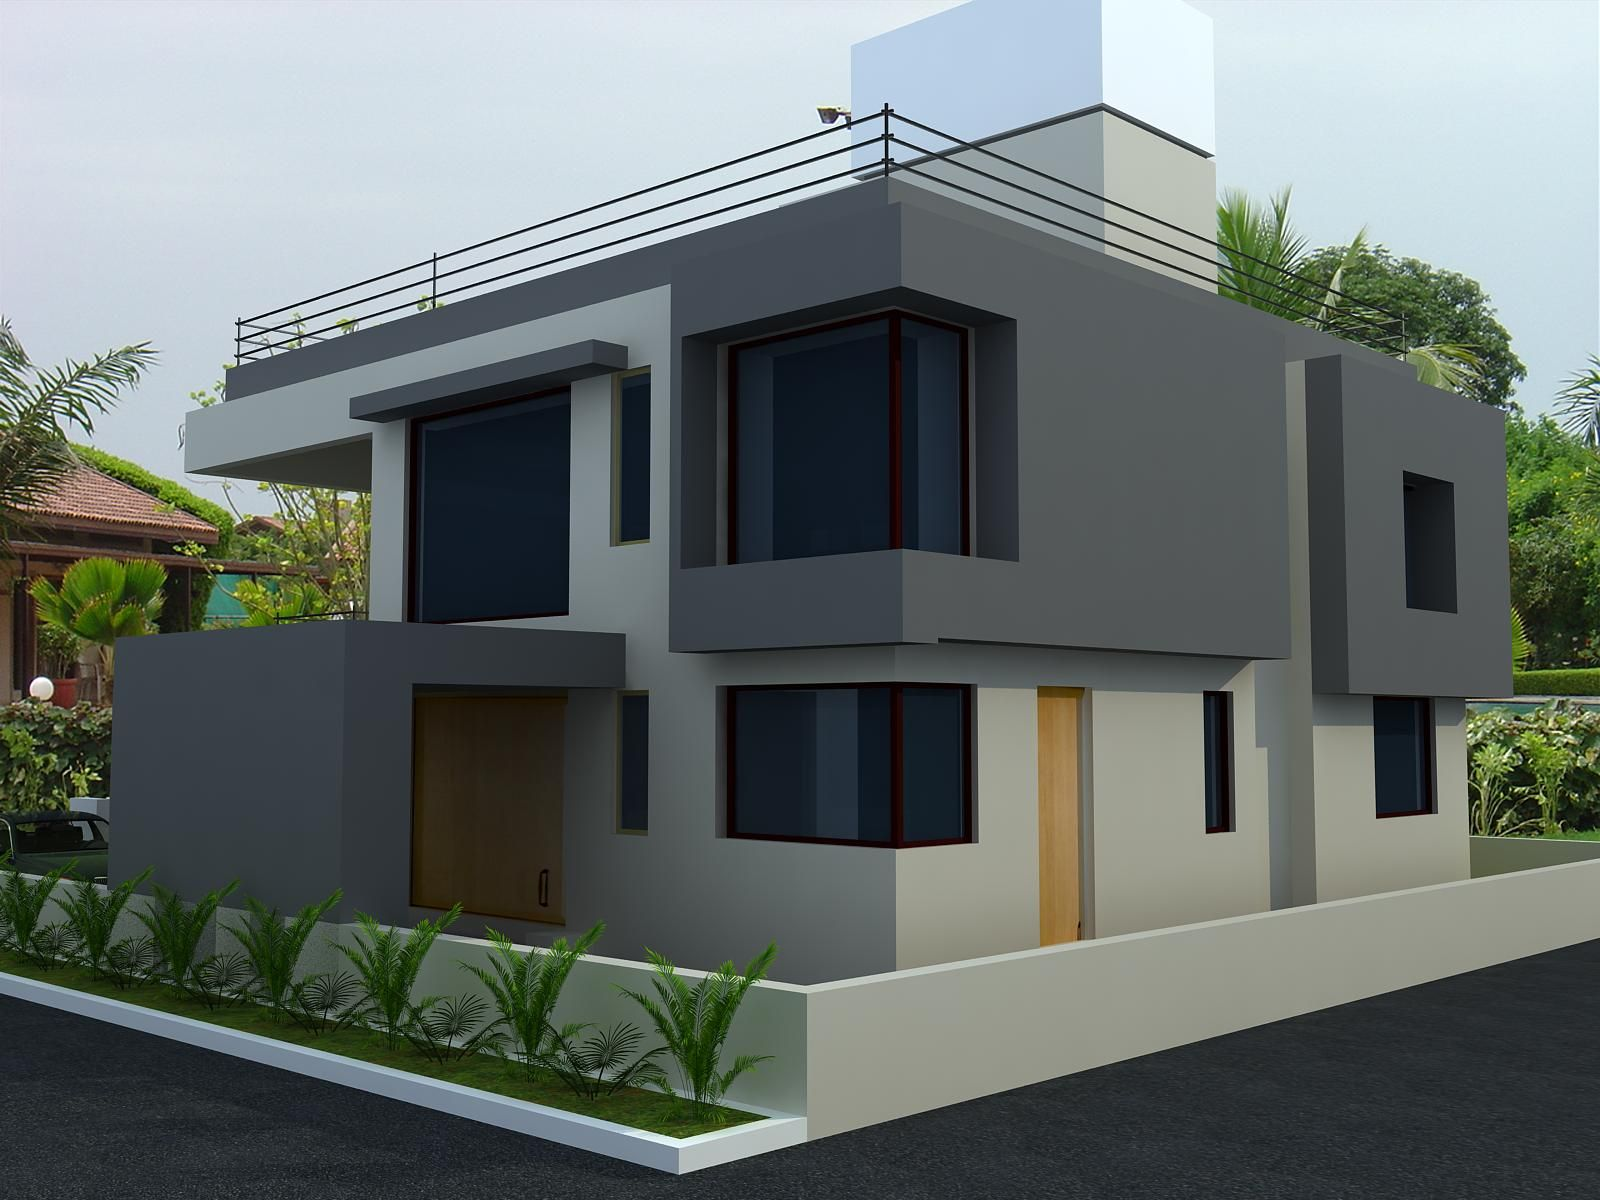 Architectural 3d model architectural 3d rendering for Exterior 3d design